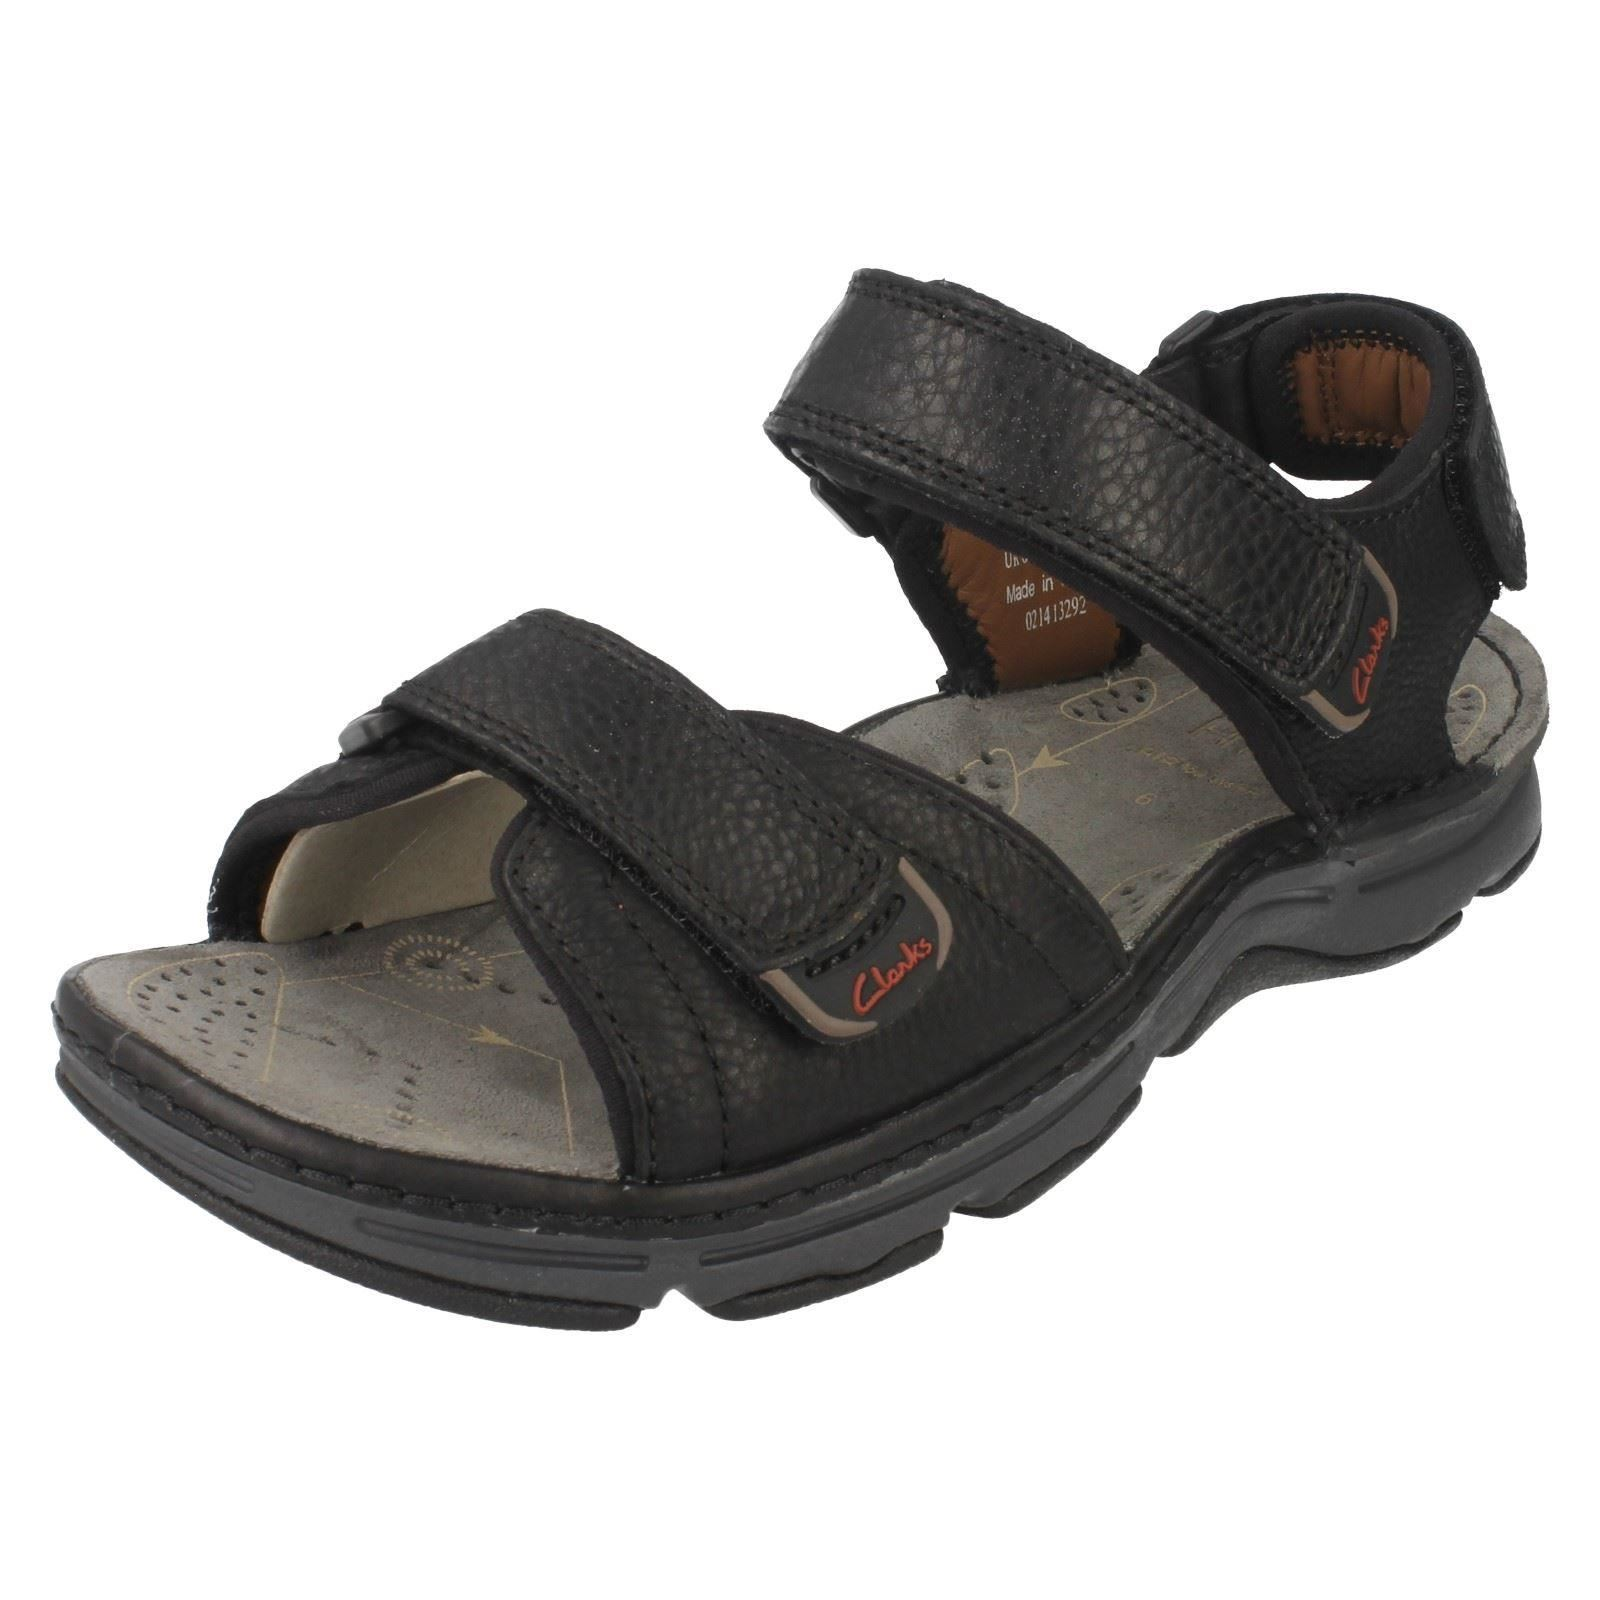 bb5c4650f98 Clarks Mens Active Air Sandals Atl Part